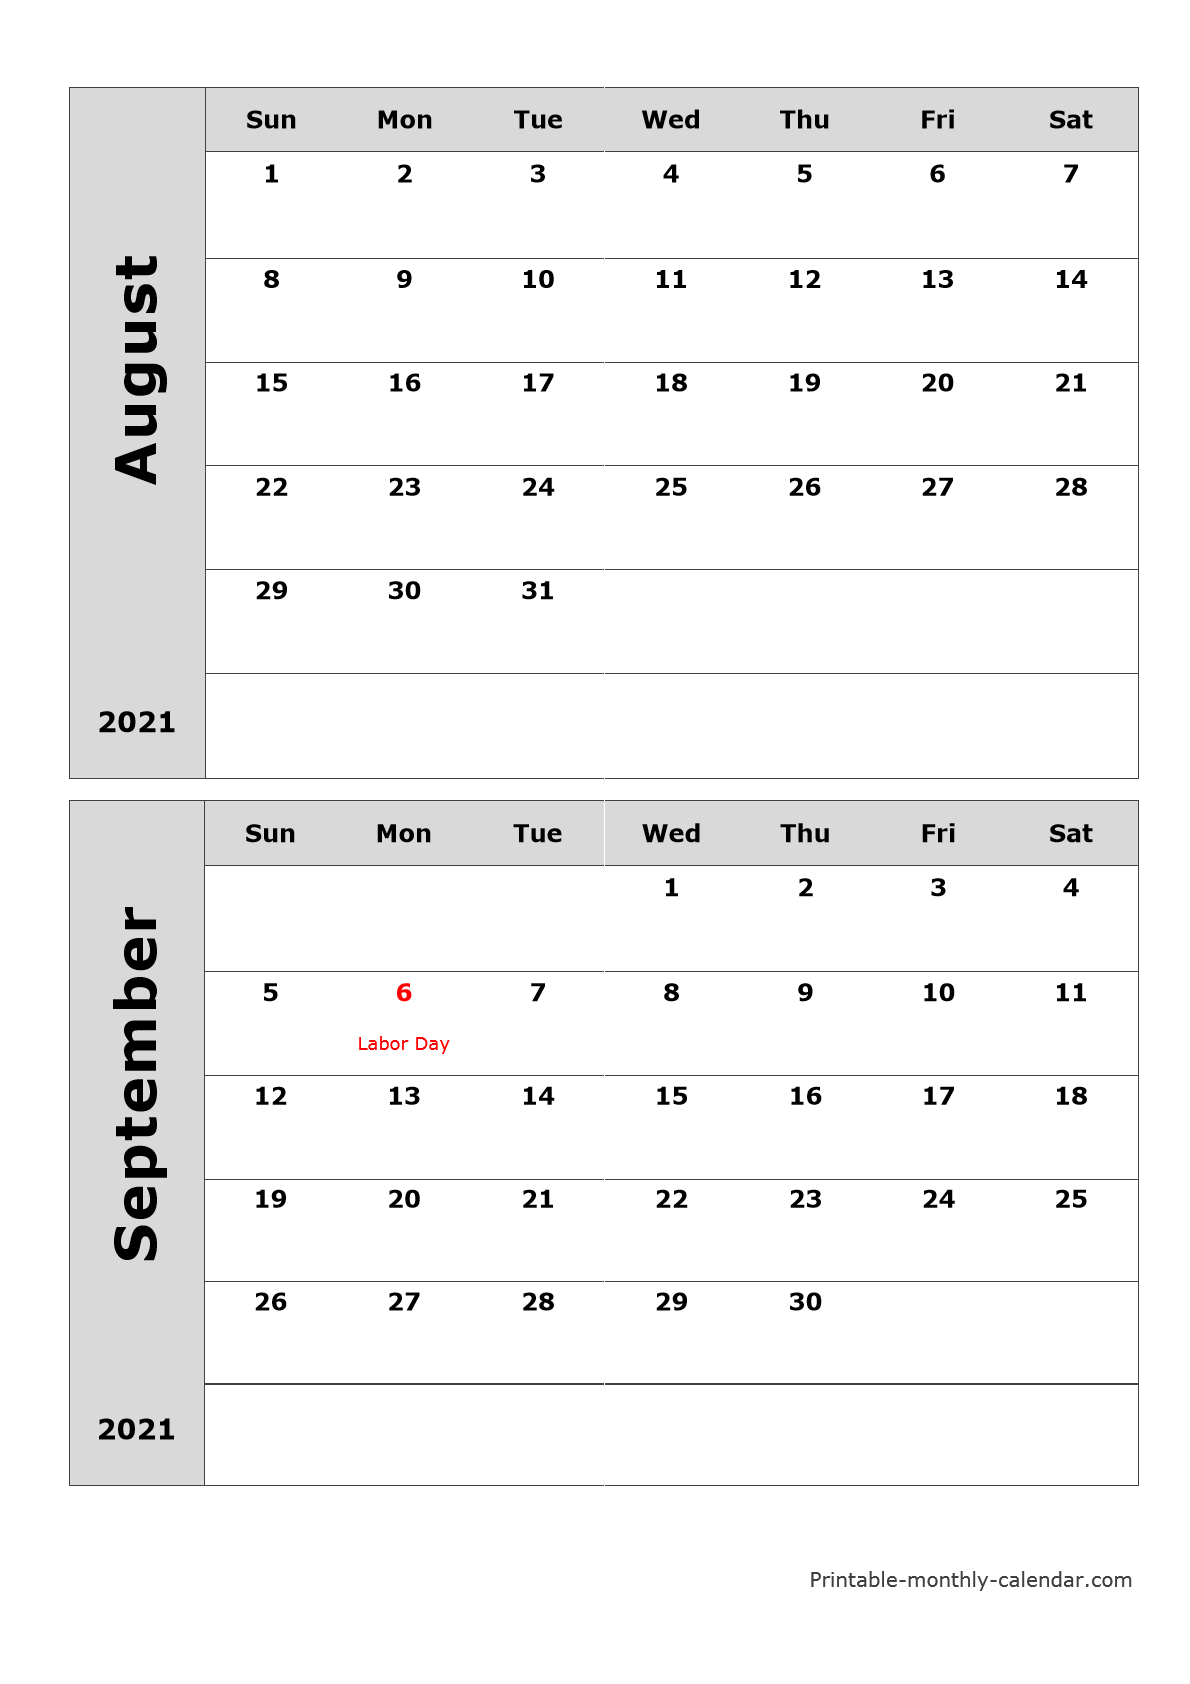 Printable Monthly Calendar August And September 2021